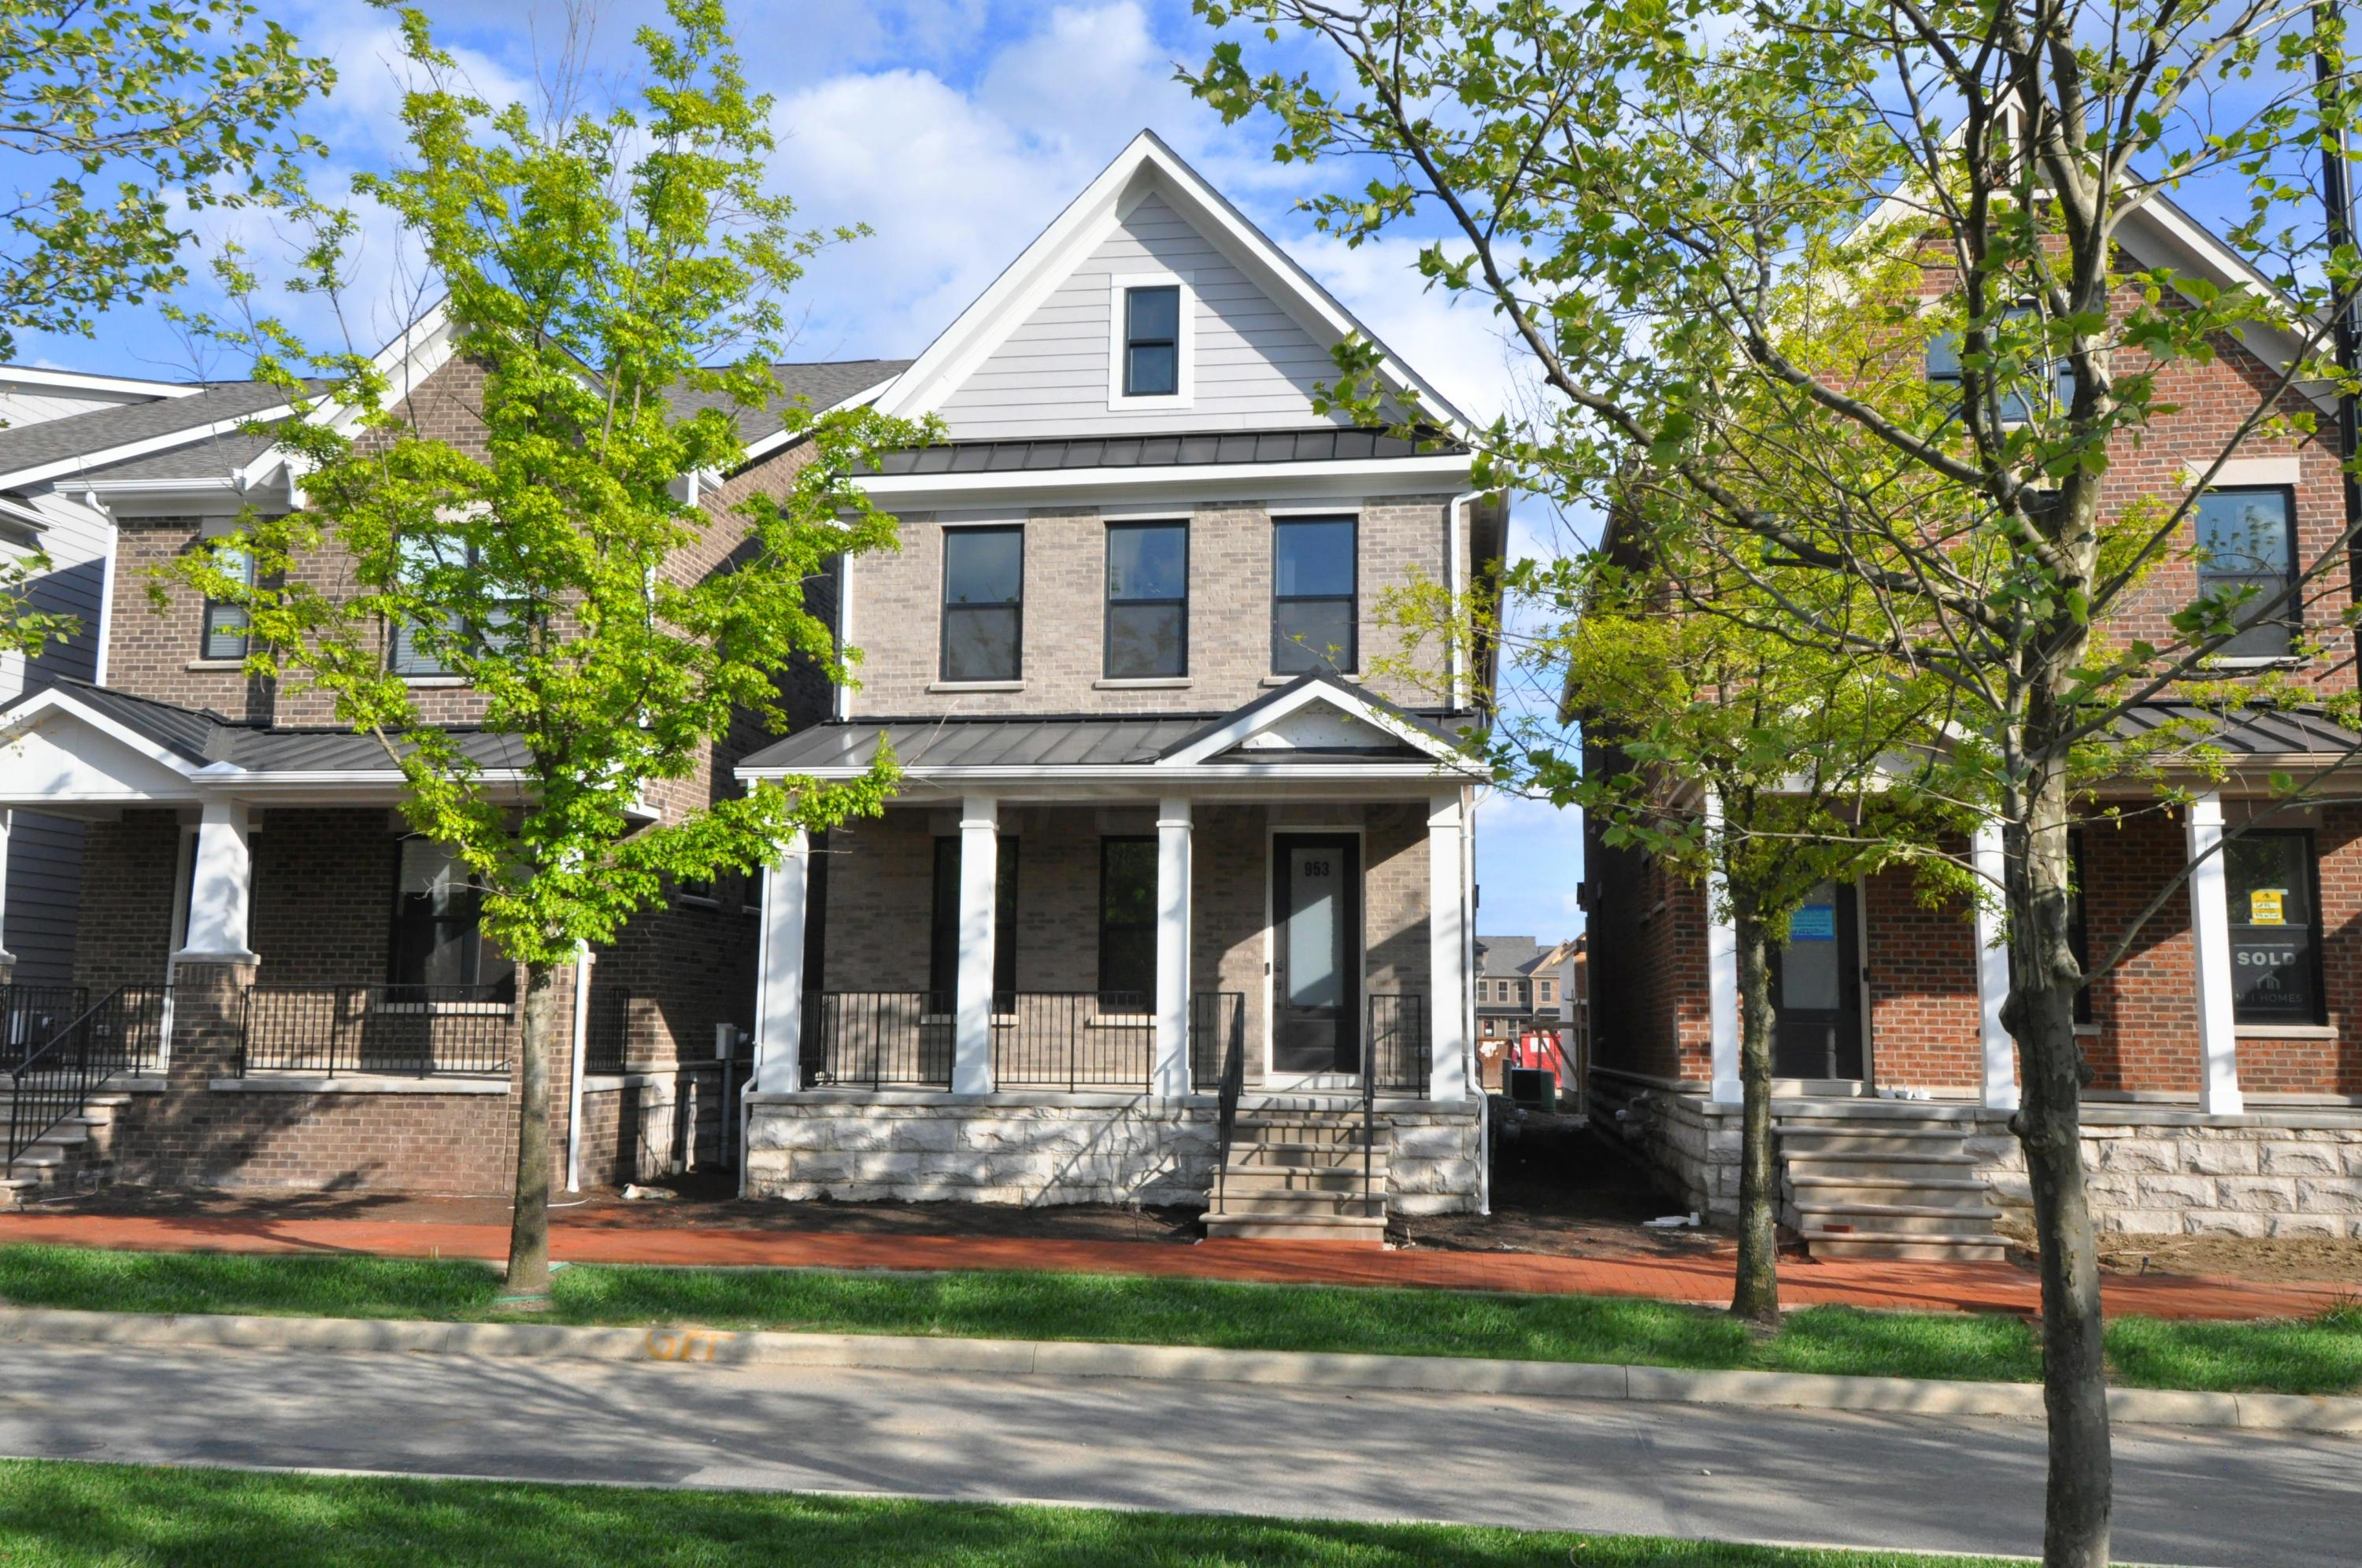 Photo of 953 First Avenue, Grandview, OH 43212